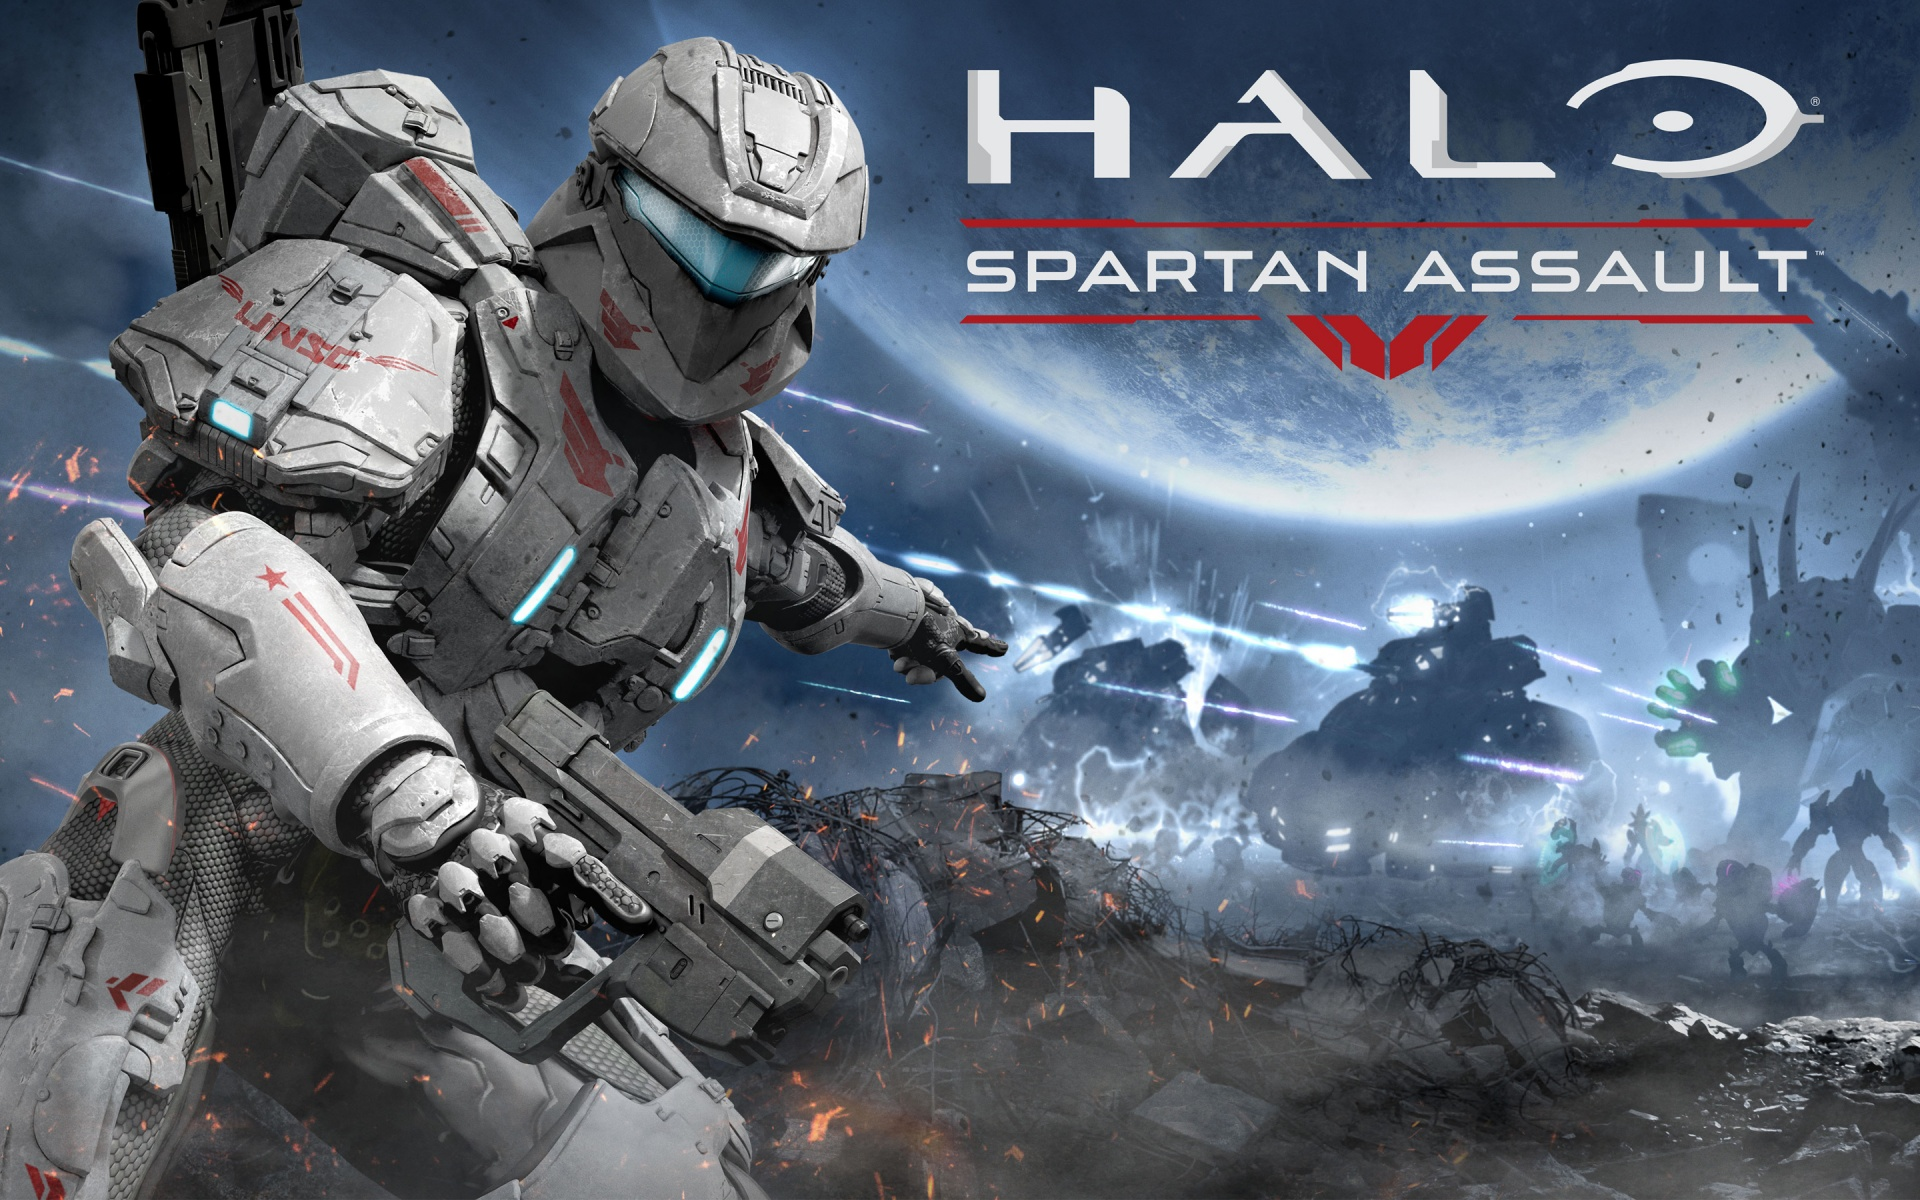 Halo Spartan Assault Game Wallpapers HD Wallpapers 1920x1200